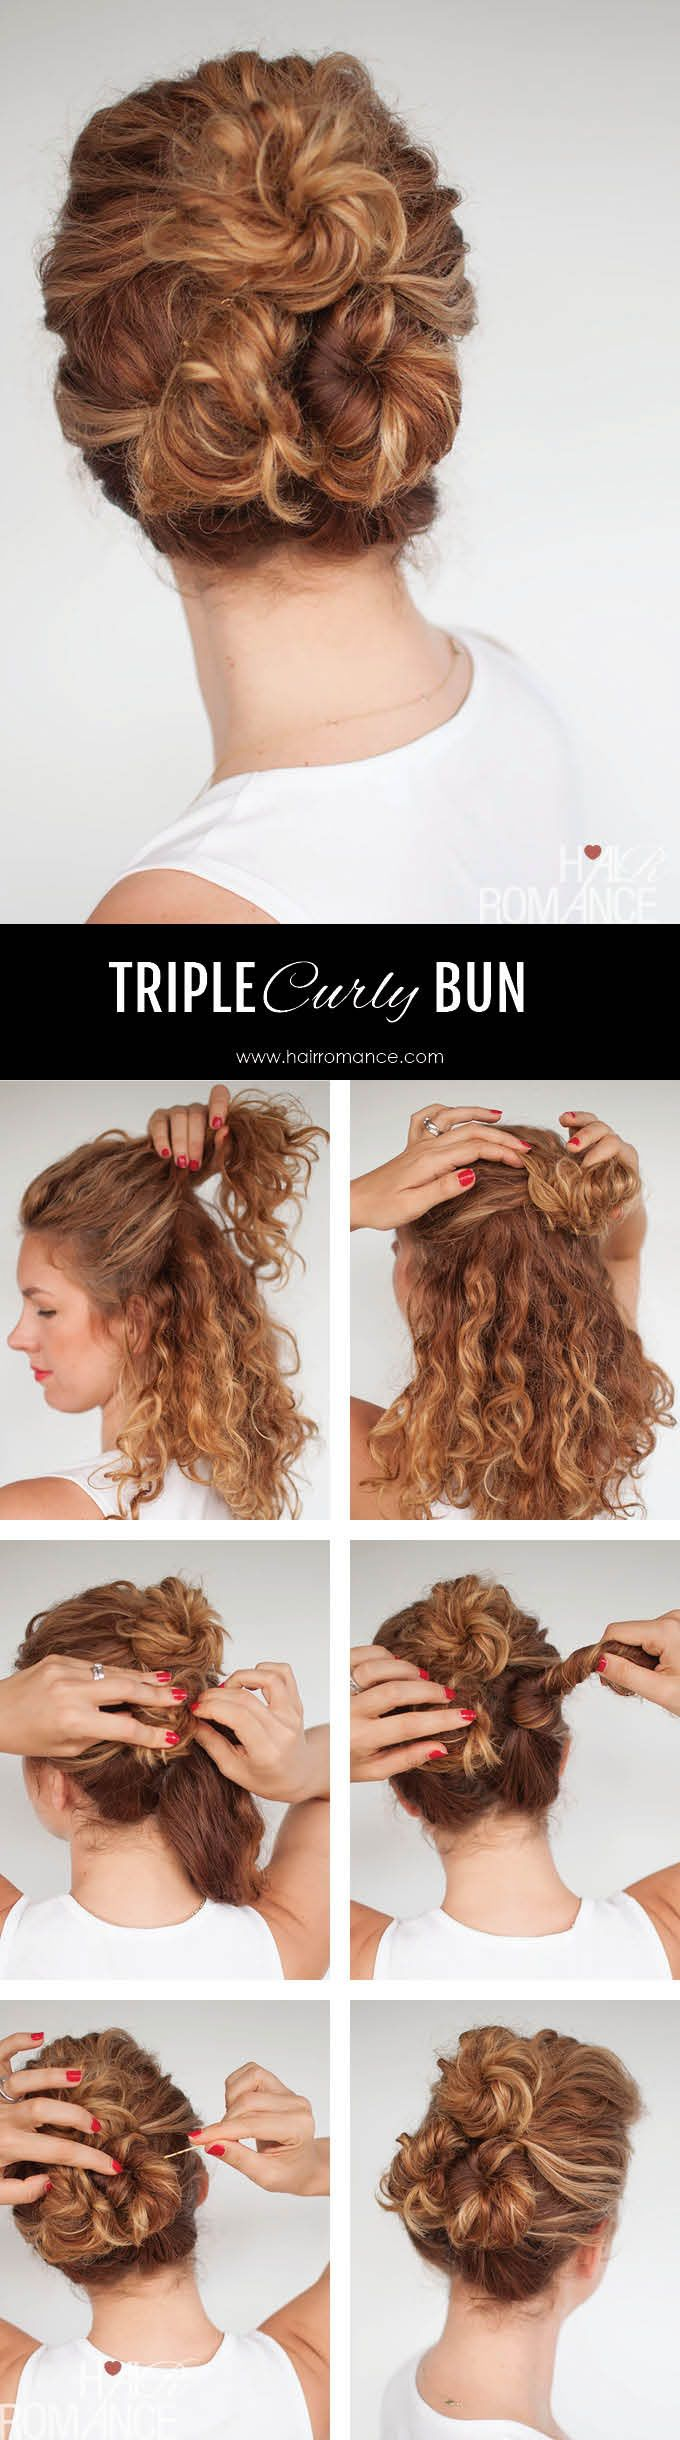 triple curly buns